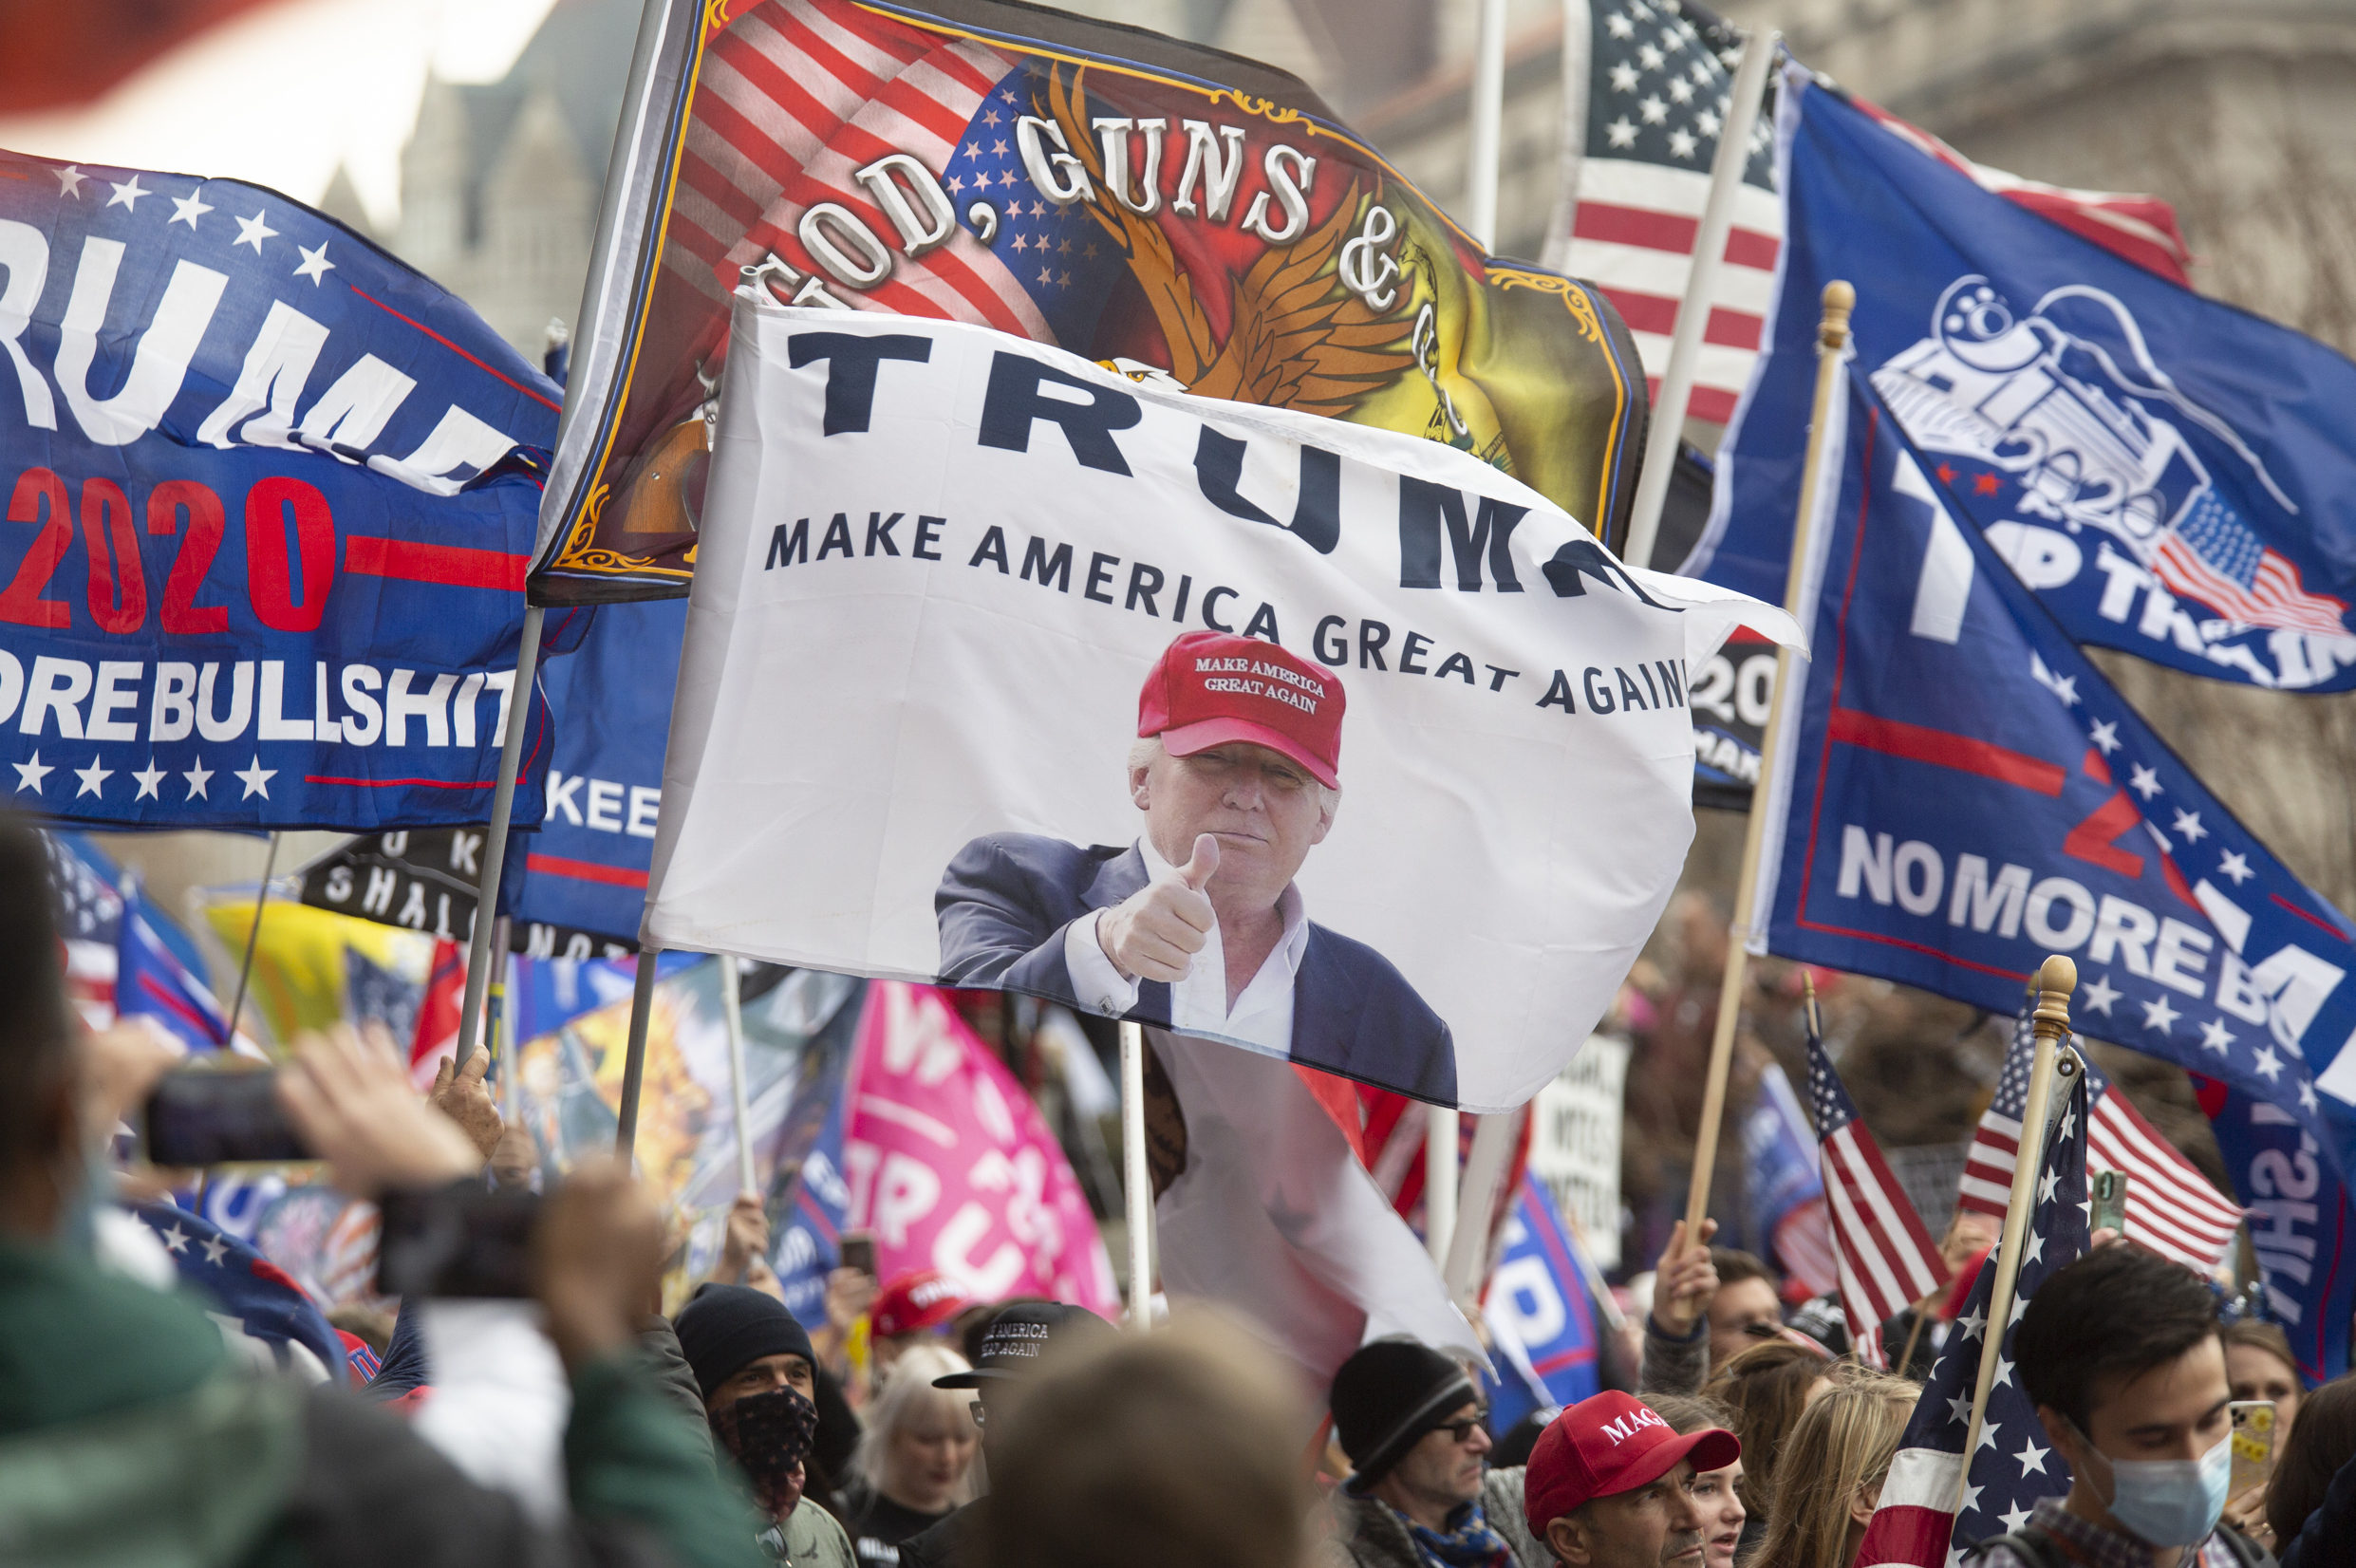 Thousands of Trump supporters again rally in Washington